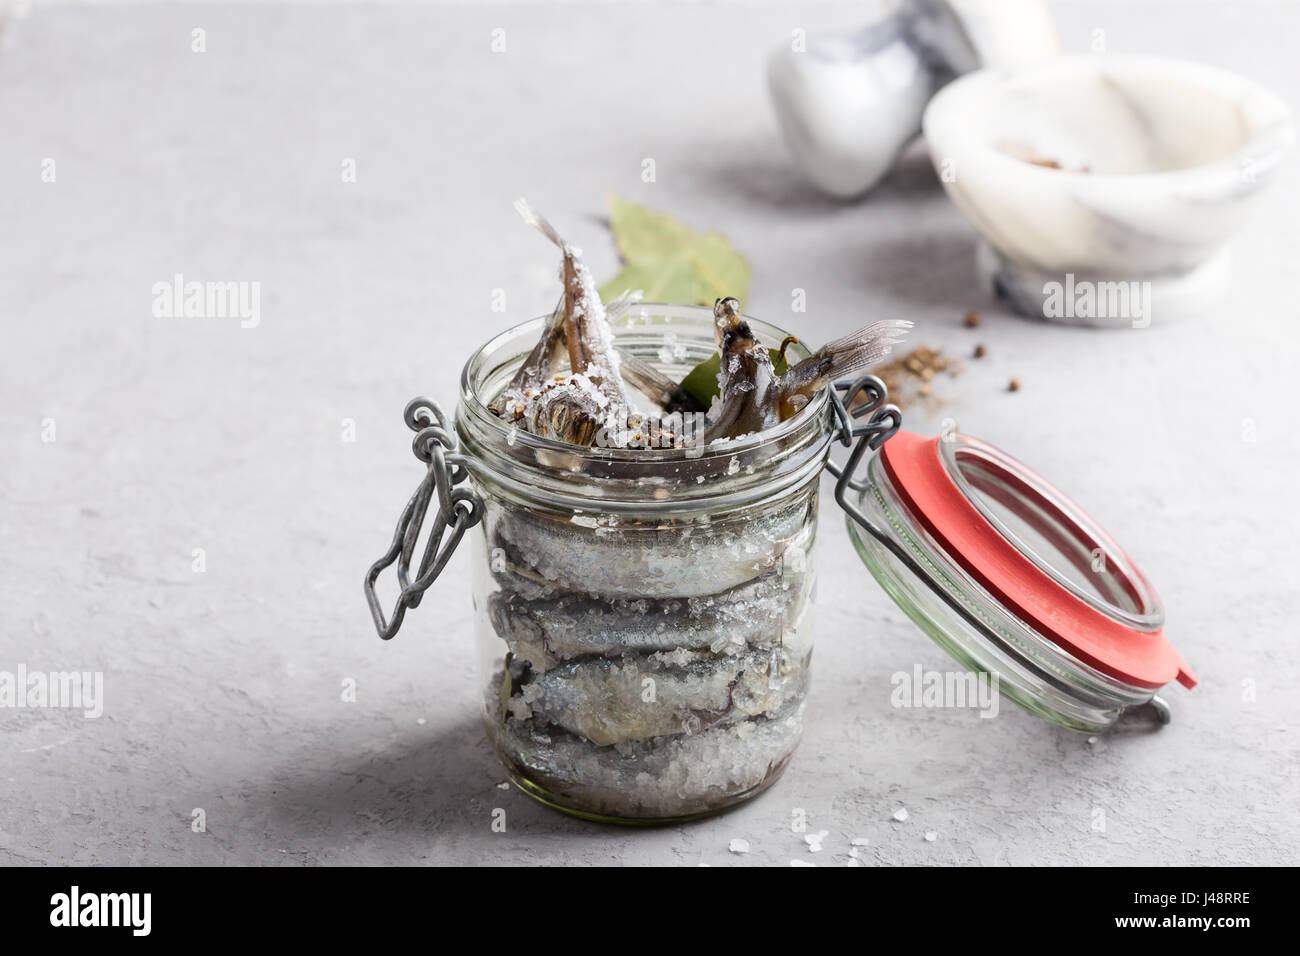 Preparing the salted capelin. Fish preserved for eating Stock Photo